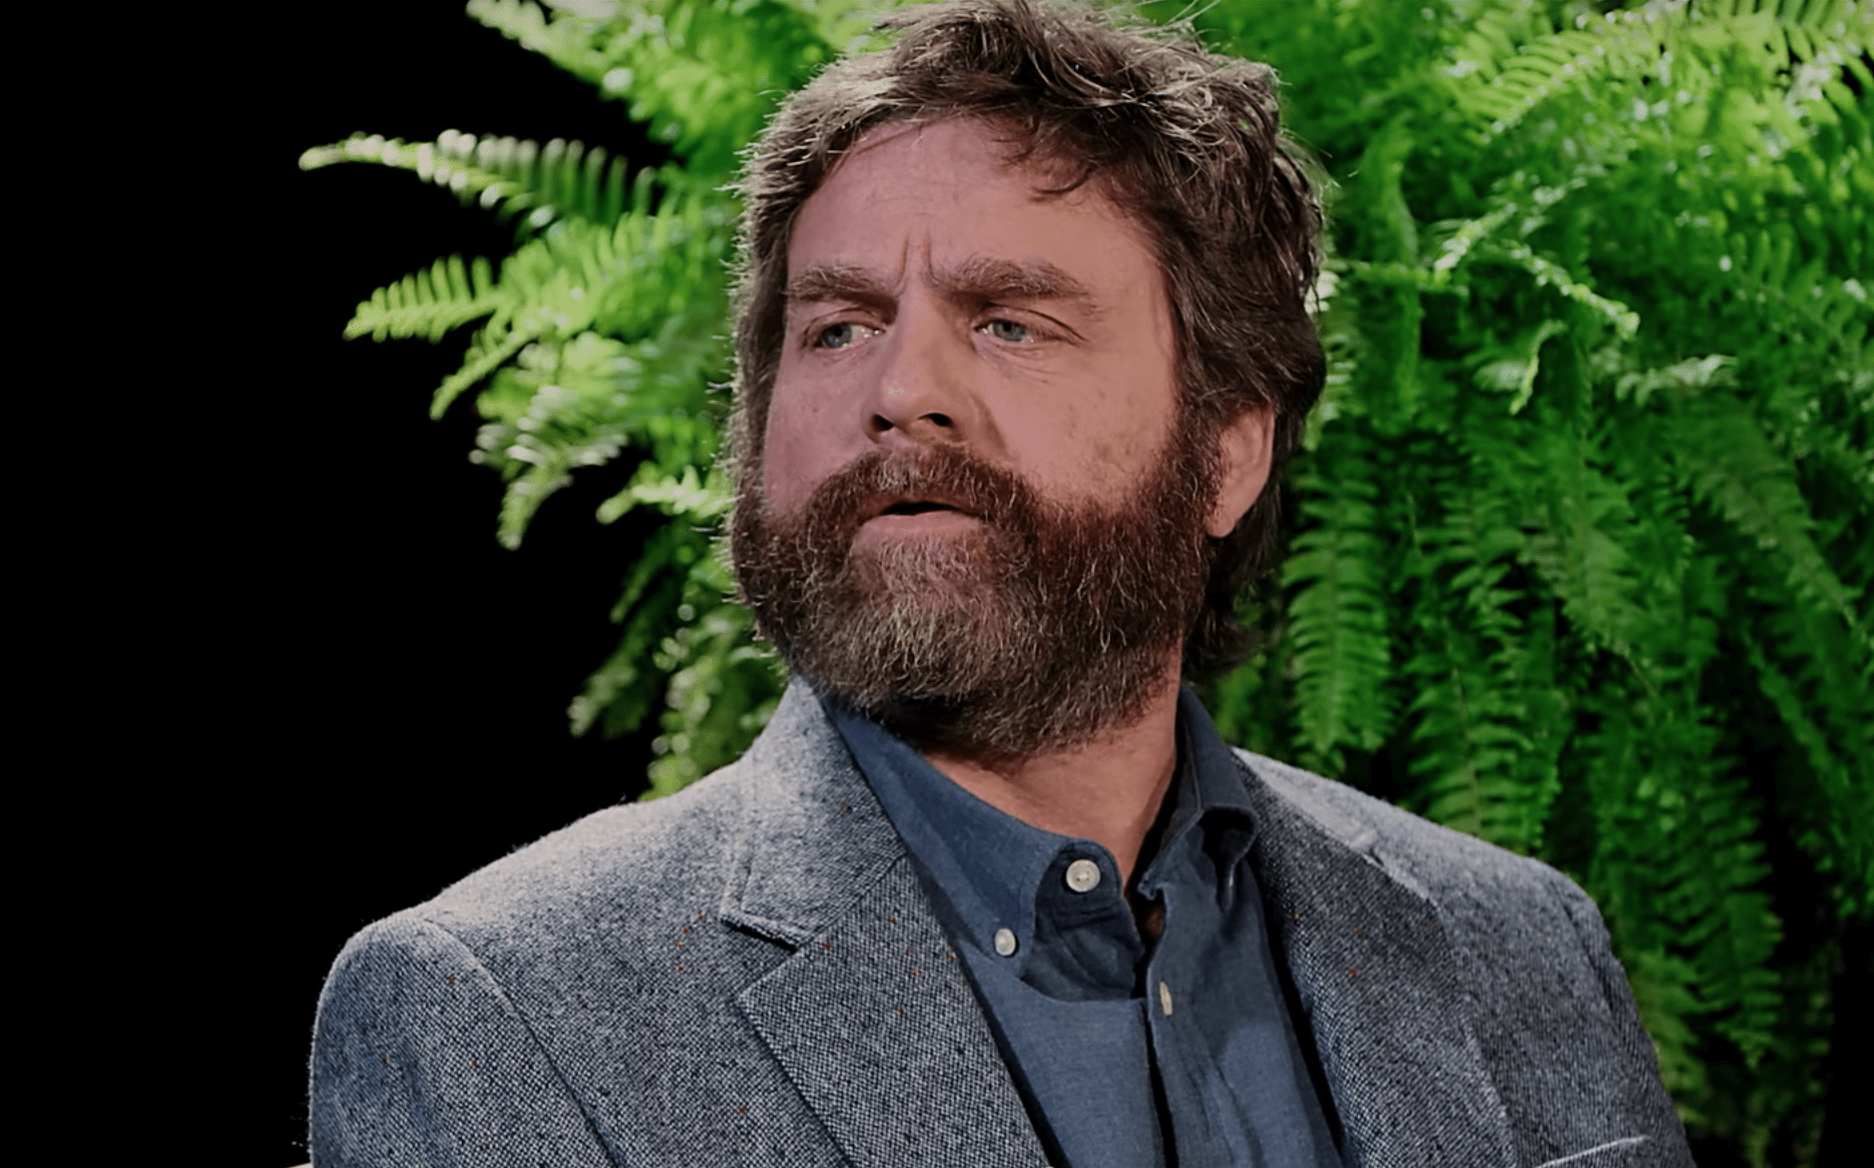 Zach Galifianakis mattatore di Between Two Ferns